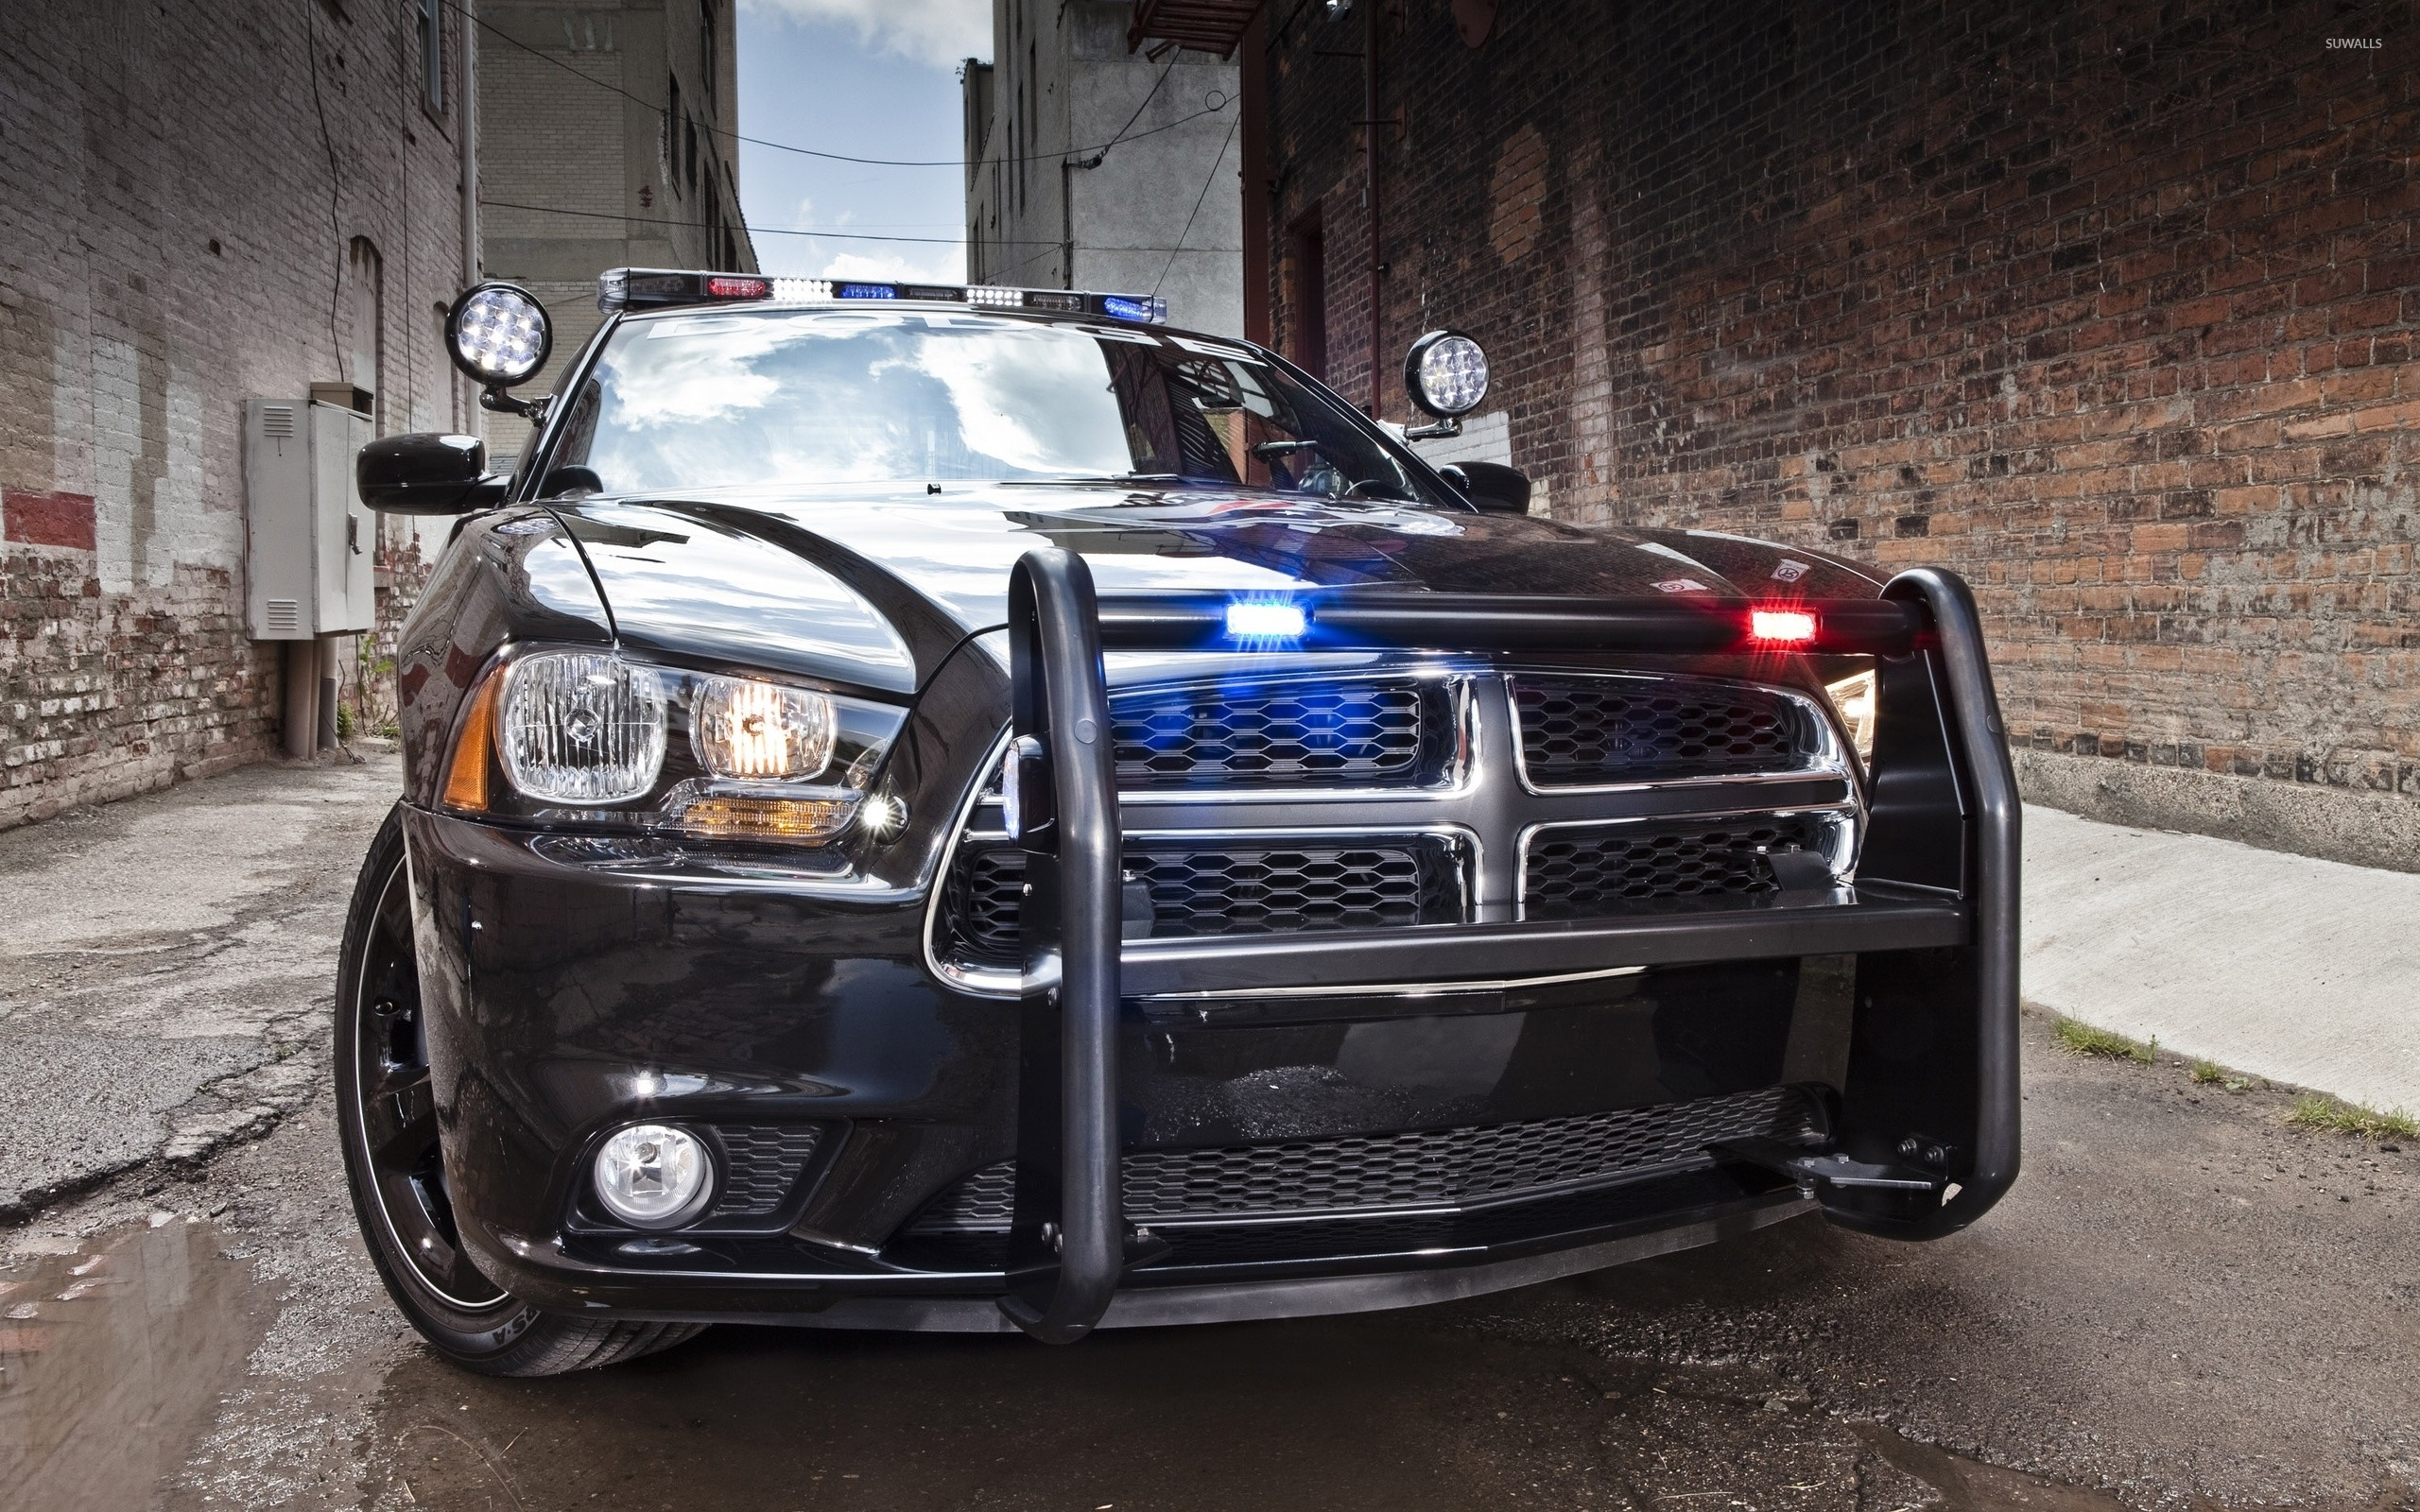 2560x1600 Dodge Charger police car [2] wallpaper